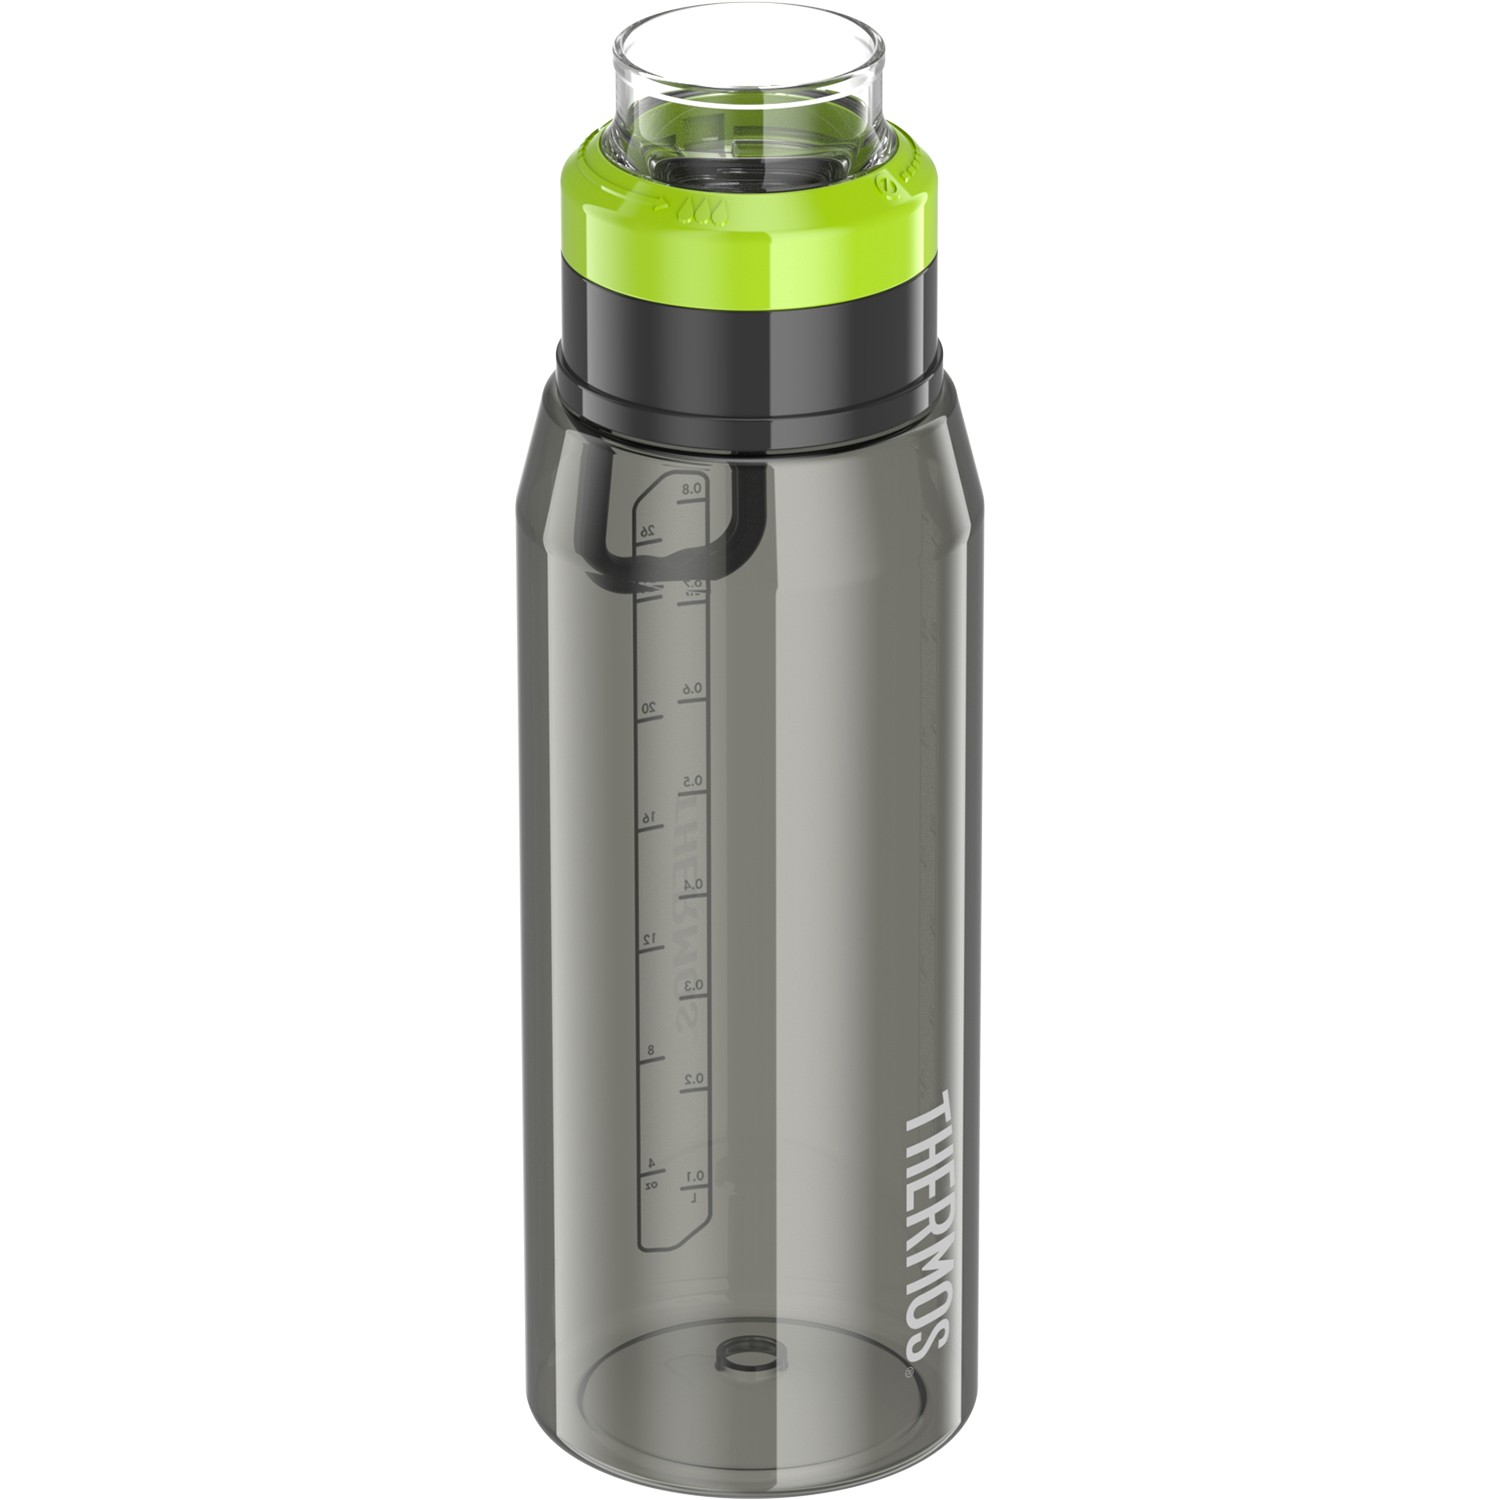 HYDRATION BOTTLE WITH 360 DEGREE DRINK LID 32OZ